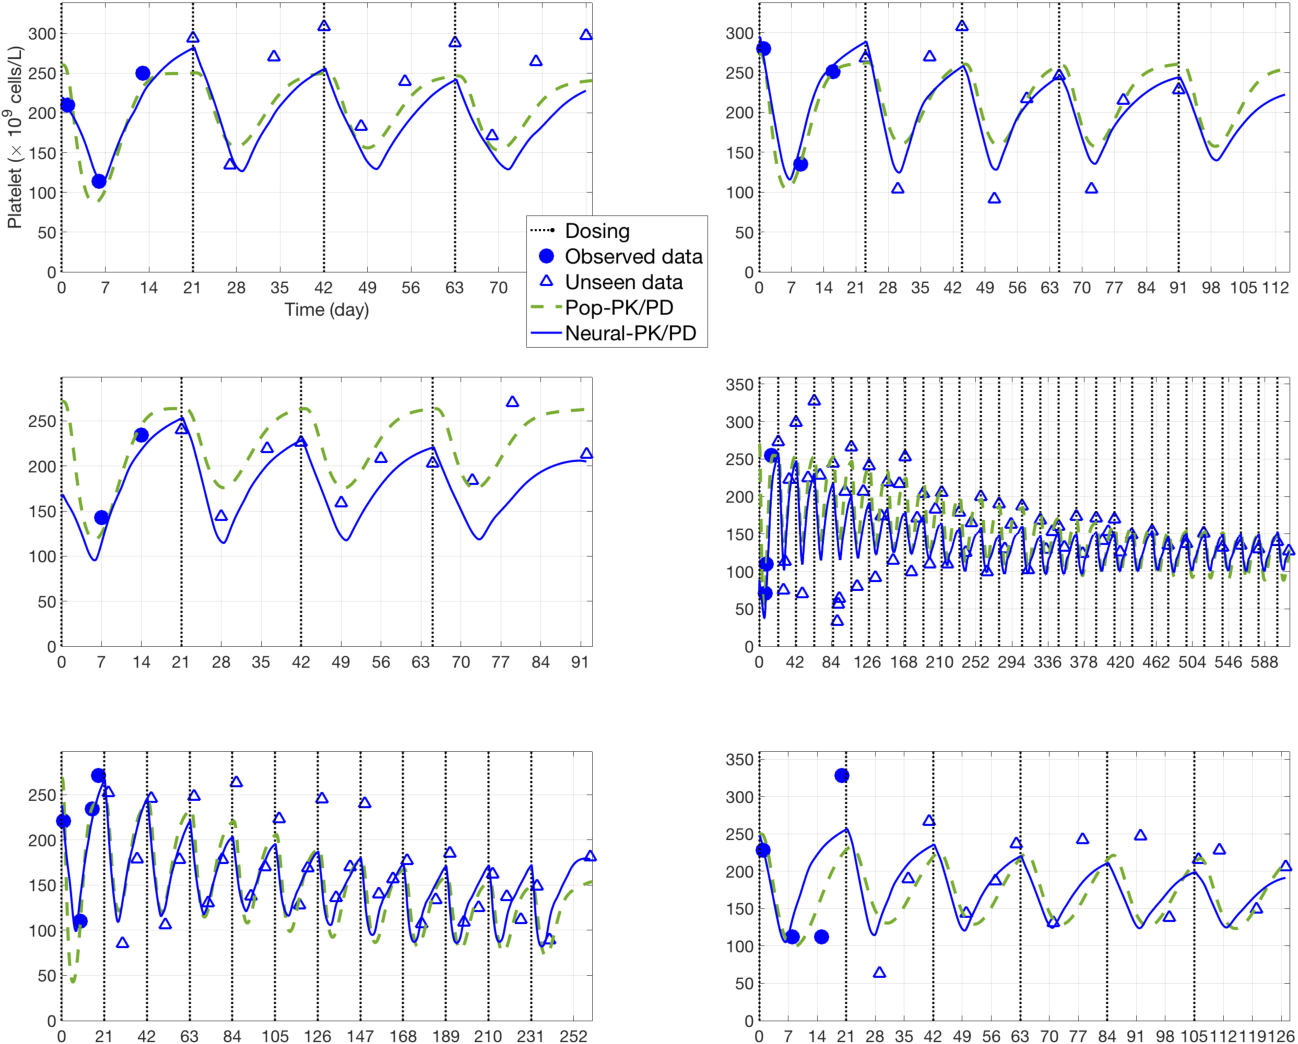 Figure 4 for Deep learning prediction of patient response time course from early data via neural-pharmacokinetic/pharmacodynamic modeling